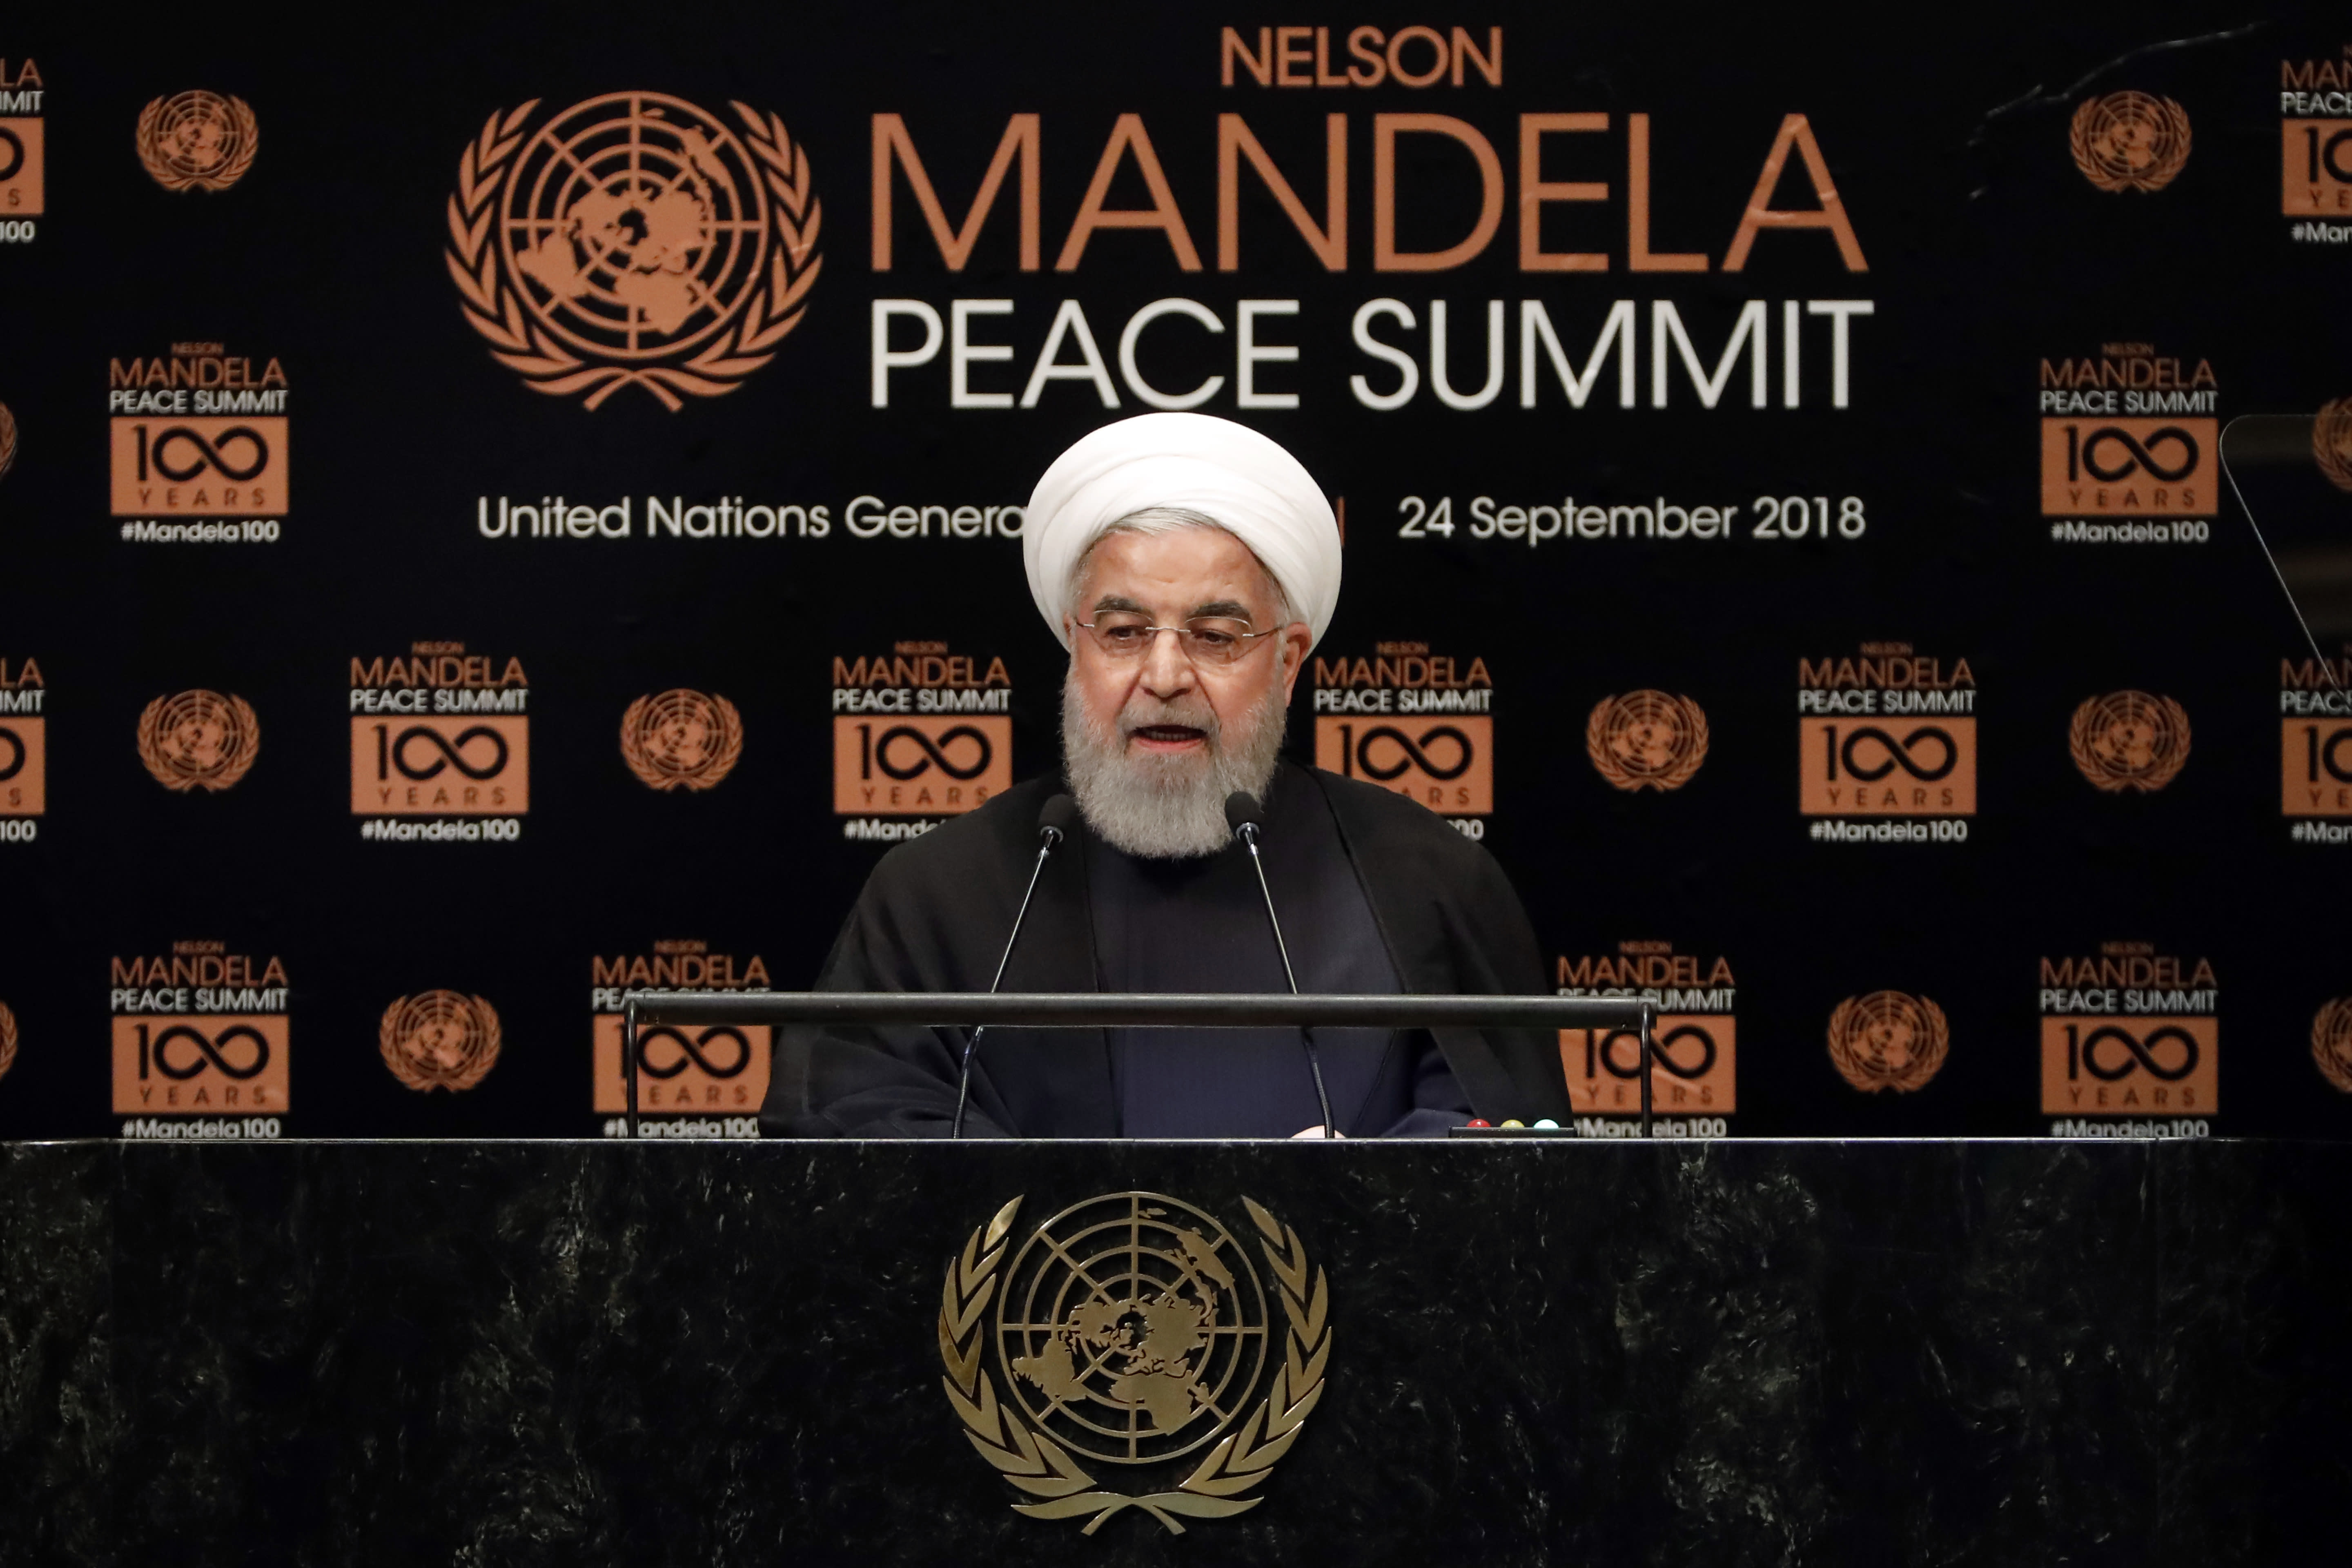 Iran's President Hassan Rouhani addresses the Nelson Mandela Peace Summit in the United Nations General Assembly, at U.N. headquarters, Monday, Sept. 24, 2018. (AP Photo/Richard Drew)